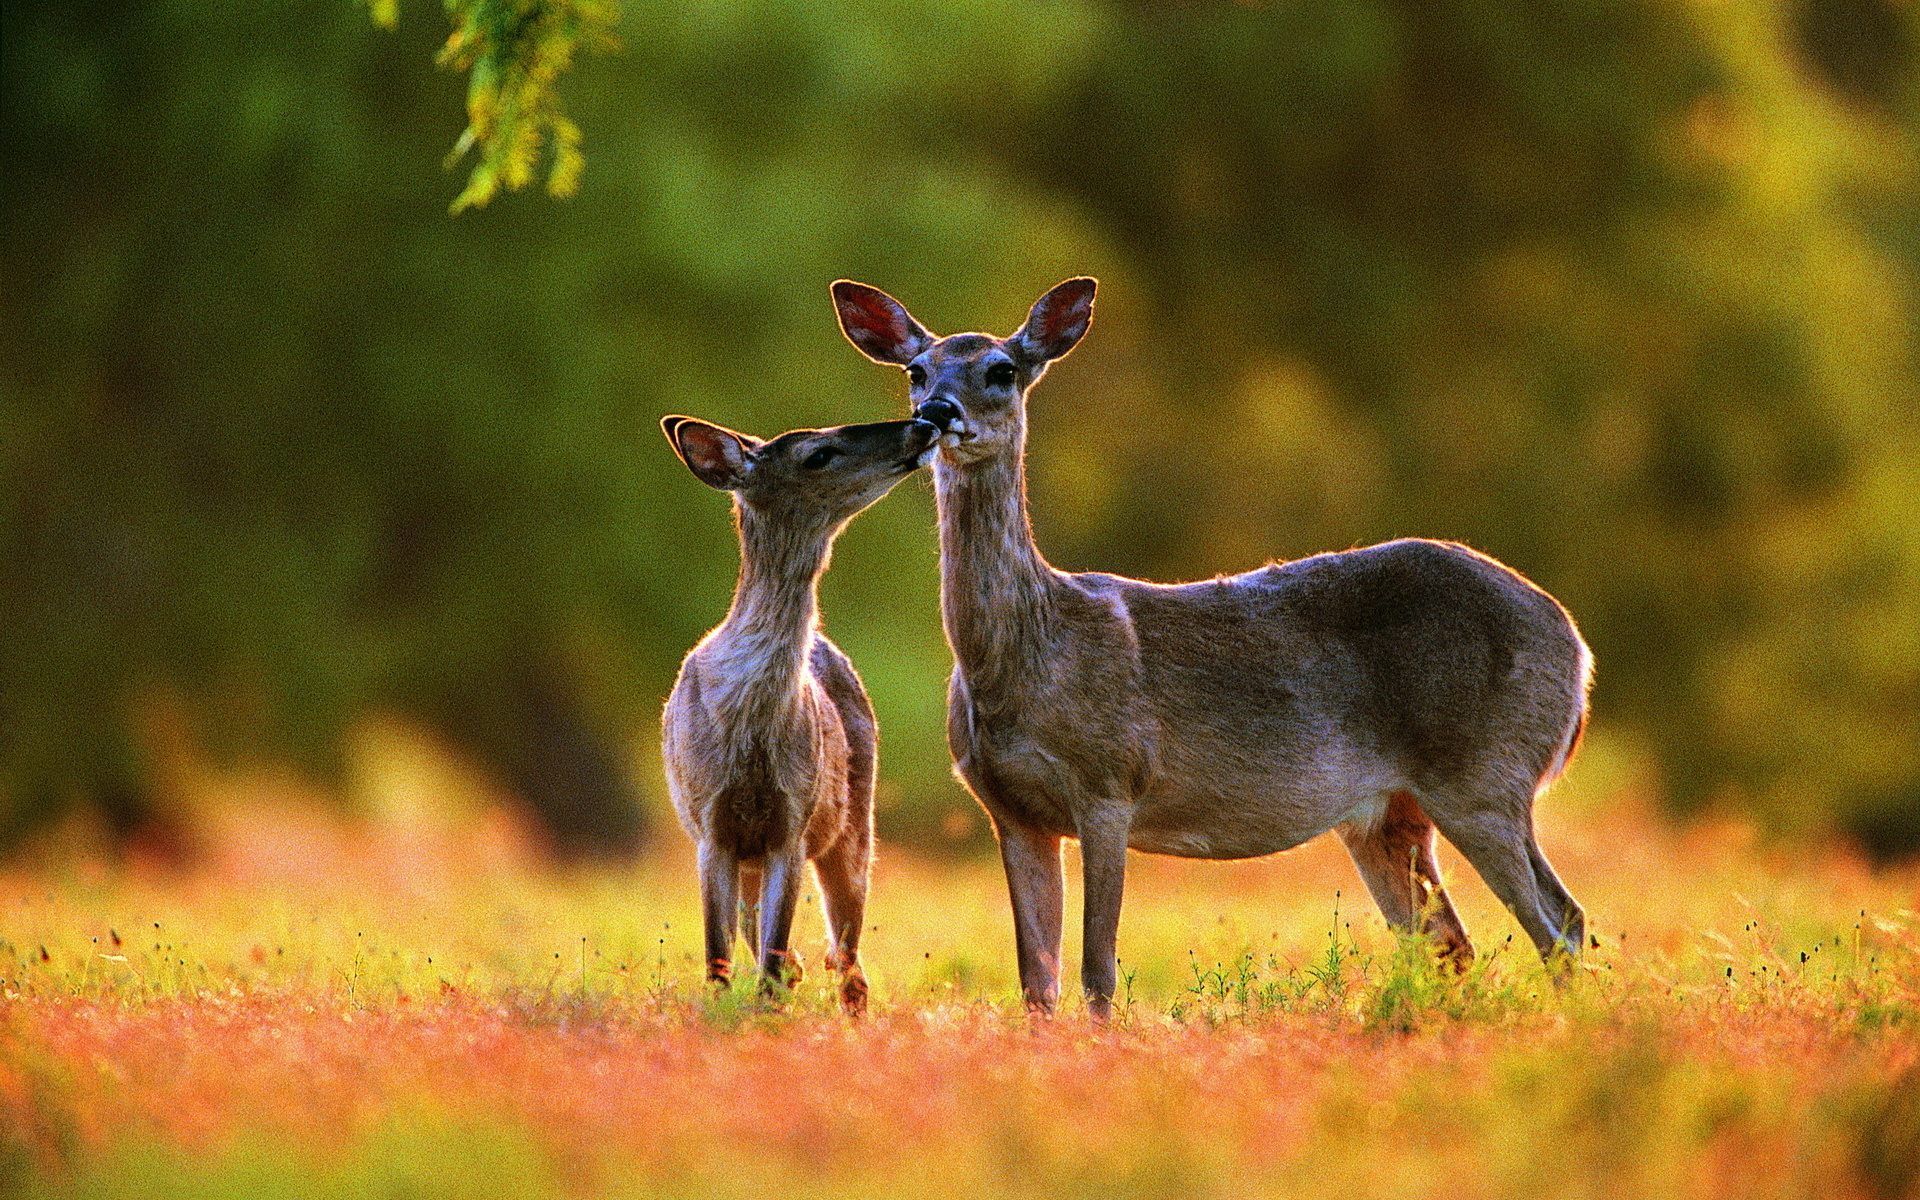 animal deer wallpaper 1920x1080 - photo #42